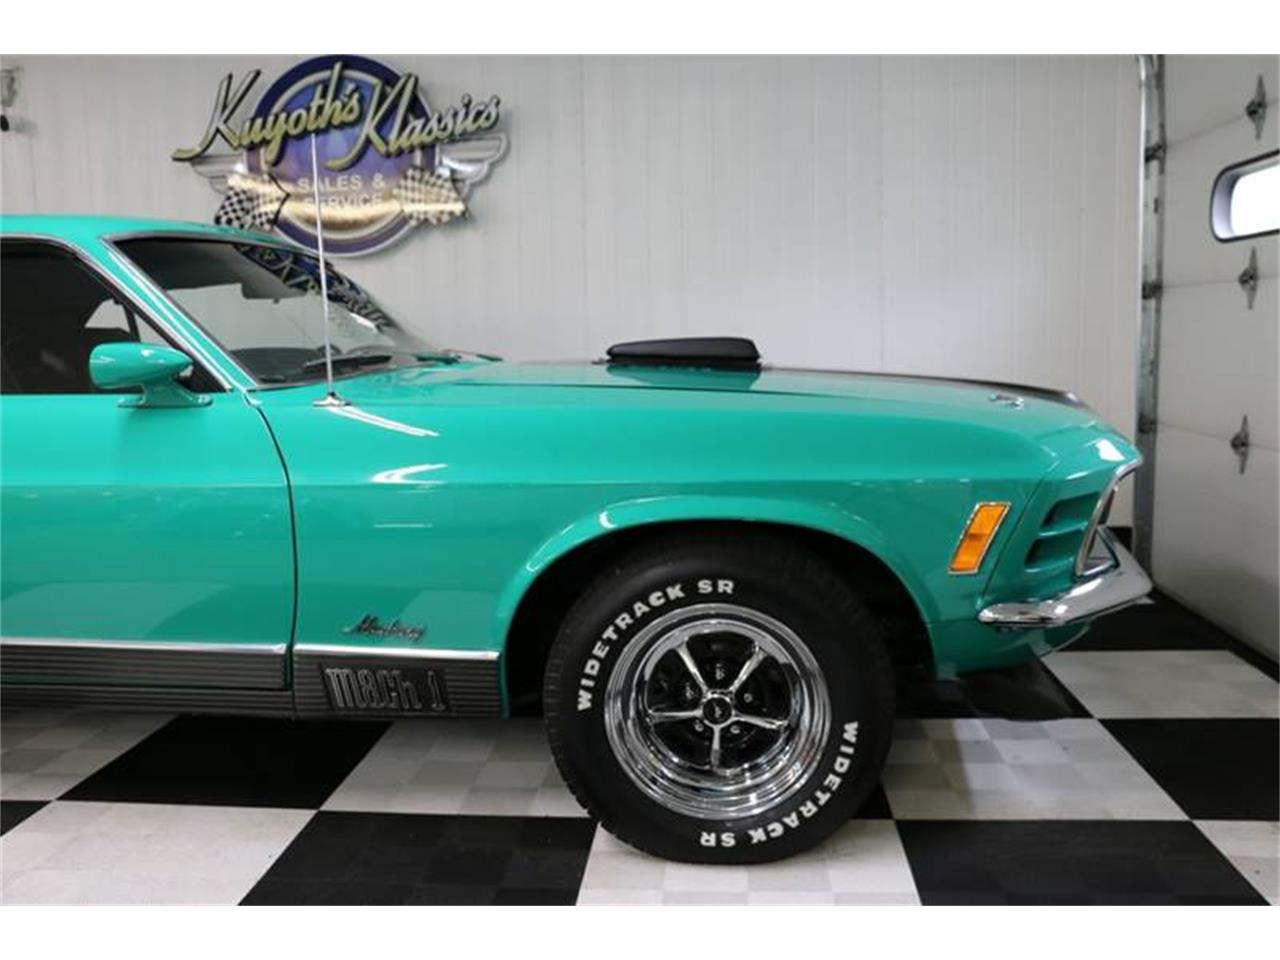 Large Picture of Classic '70 Mustang located in Wisconsin - $49,995.00 Offered by Kuyoth's Klassics - Q6NU